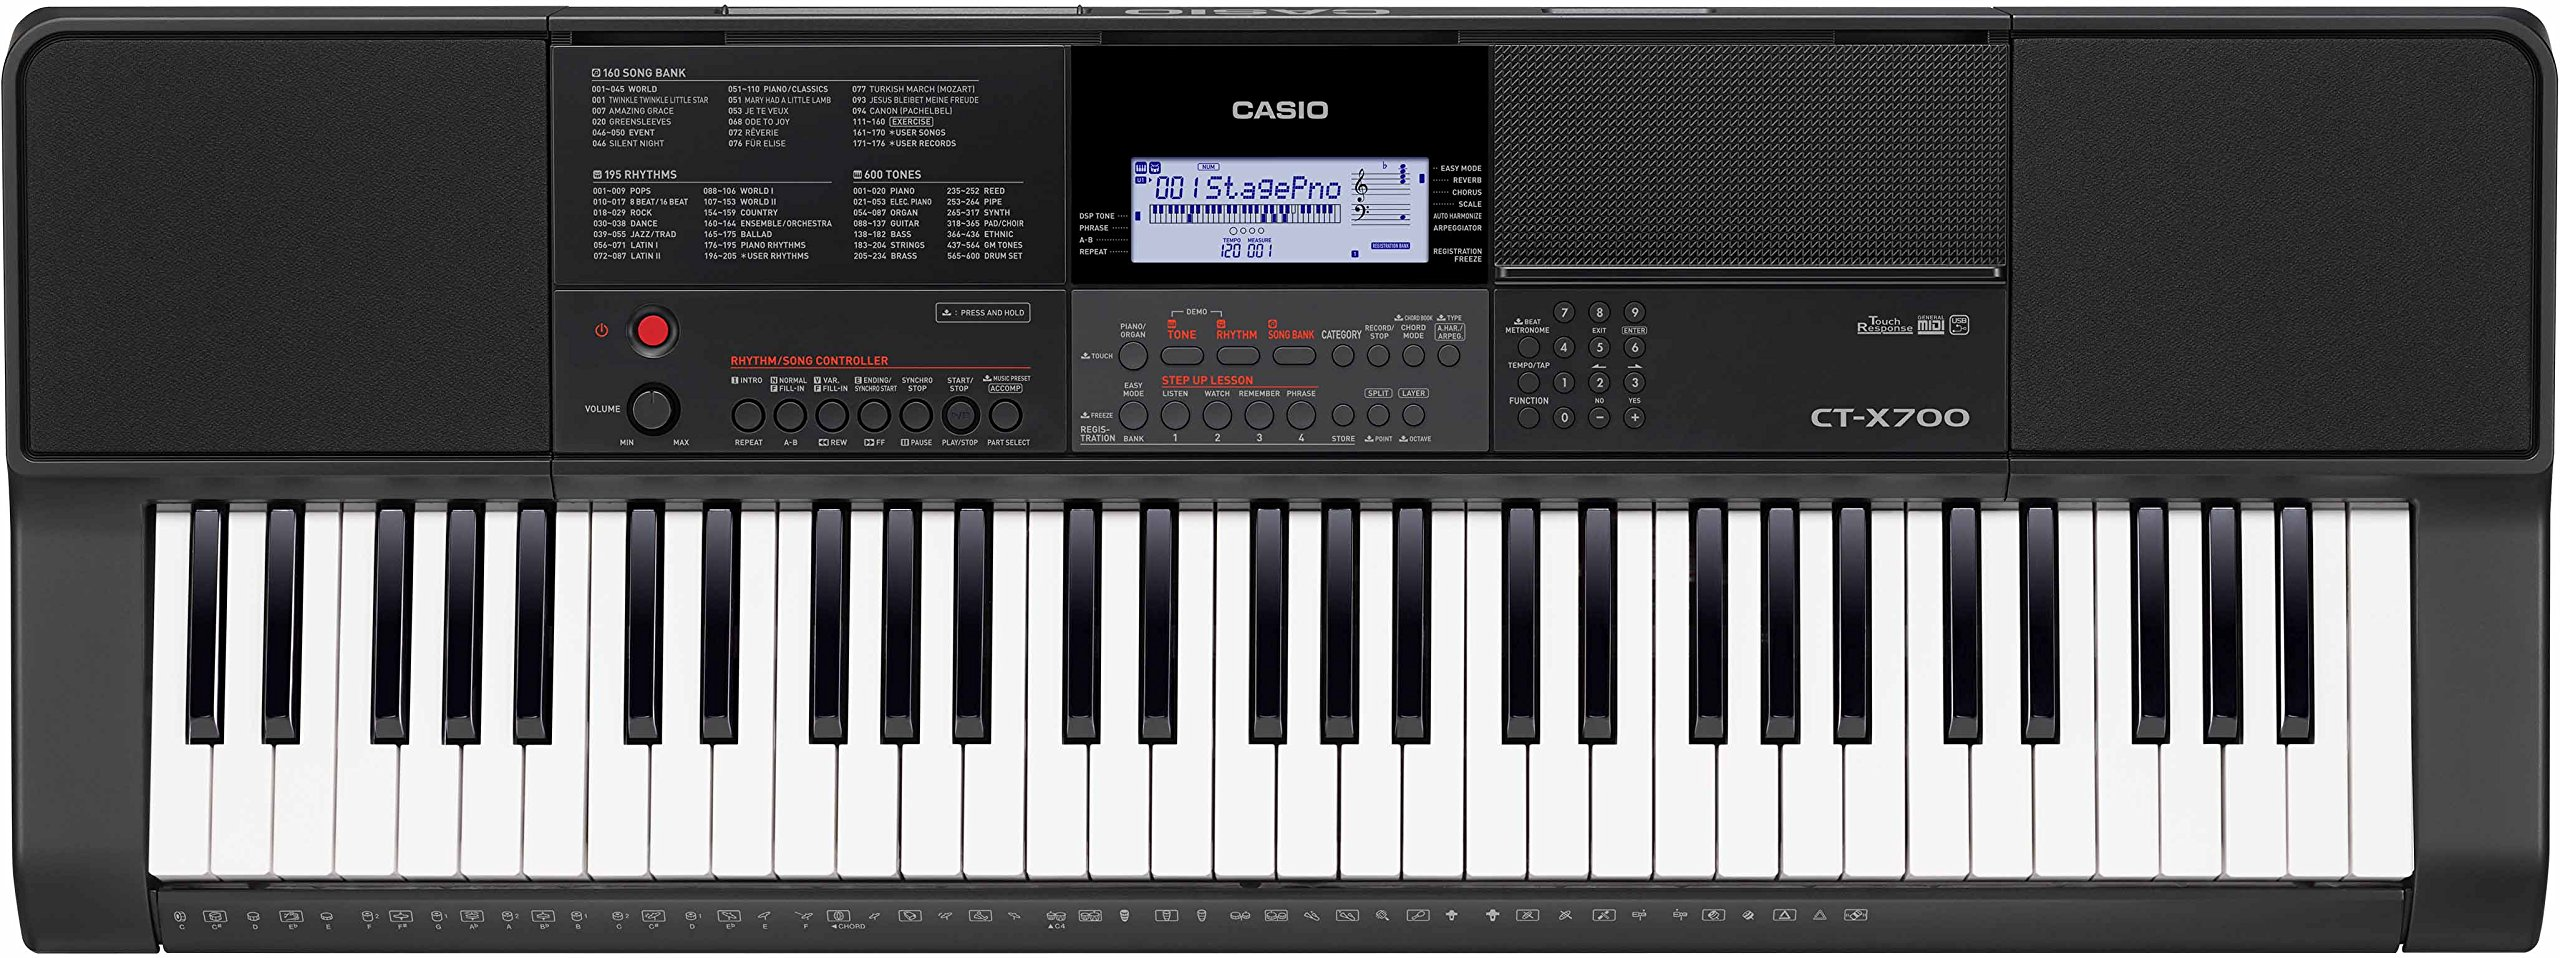 Casio CT-X700 Portable Keyboard Bundle with Stand, Bench, Sustain Pedal, Power Adapter, Austin Bazaar Instructional DVD, and Polishing Cloth by Casio (Image #2)